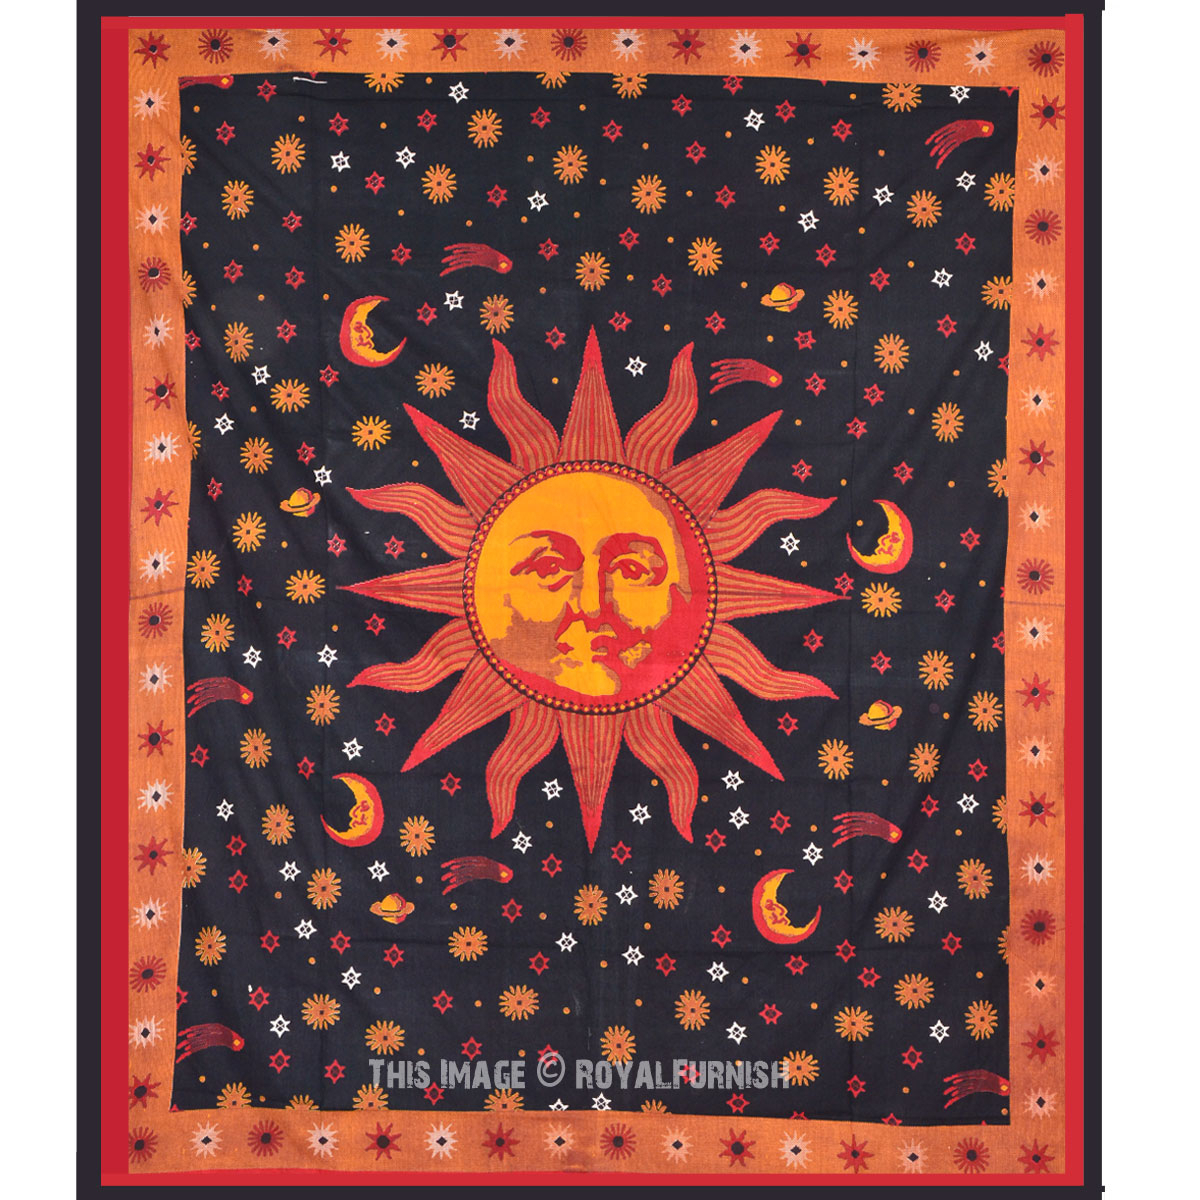 Psychedelic Celestial Black Sun Moon Tapestry Wall Hanging Intended For 2018 Blended Fabric Celestial Wall Hangings (set Of 3) (View 5 of 20)